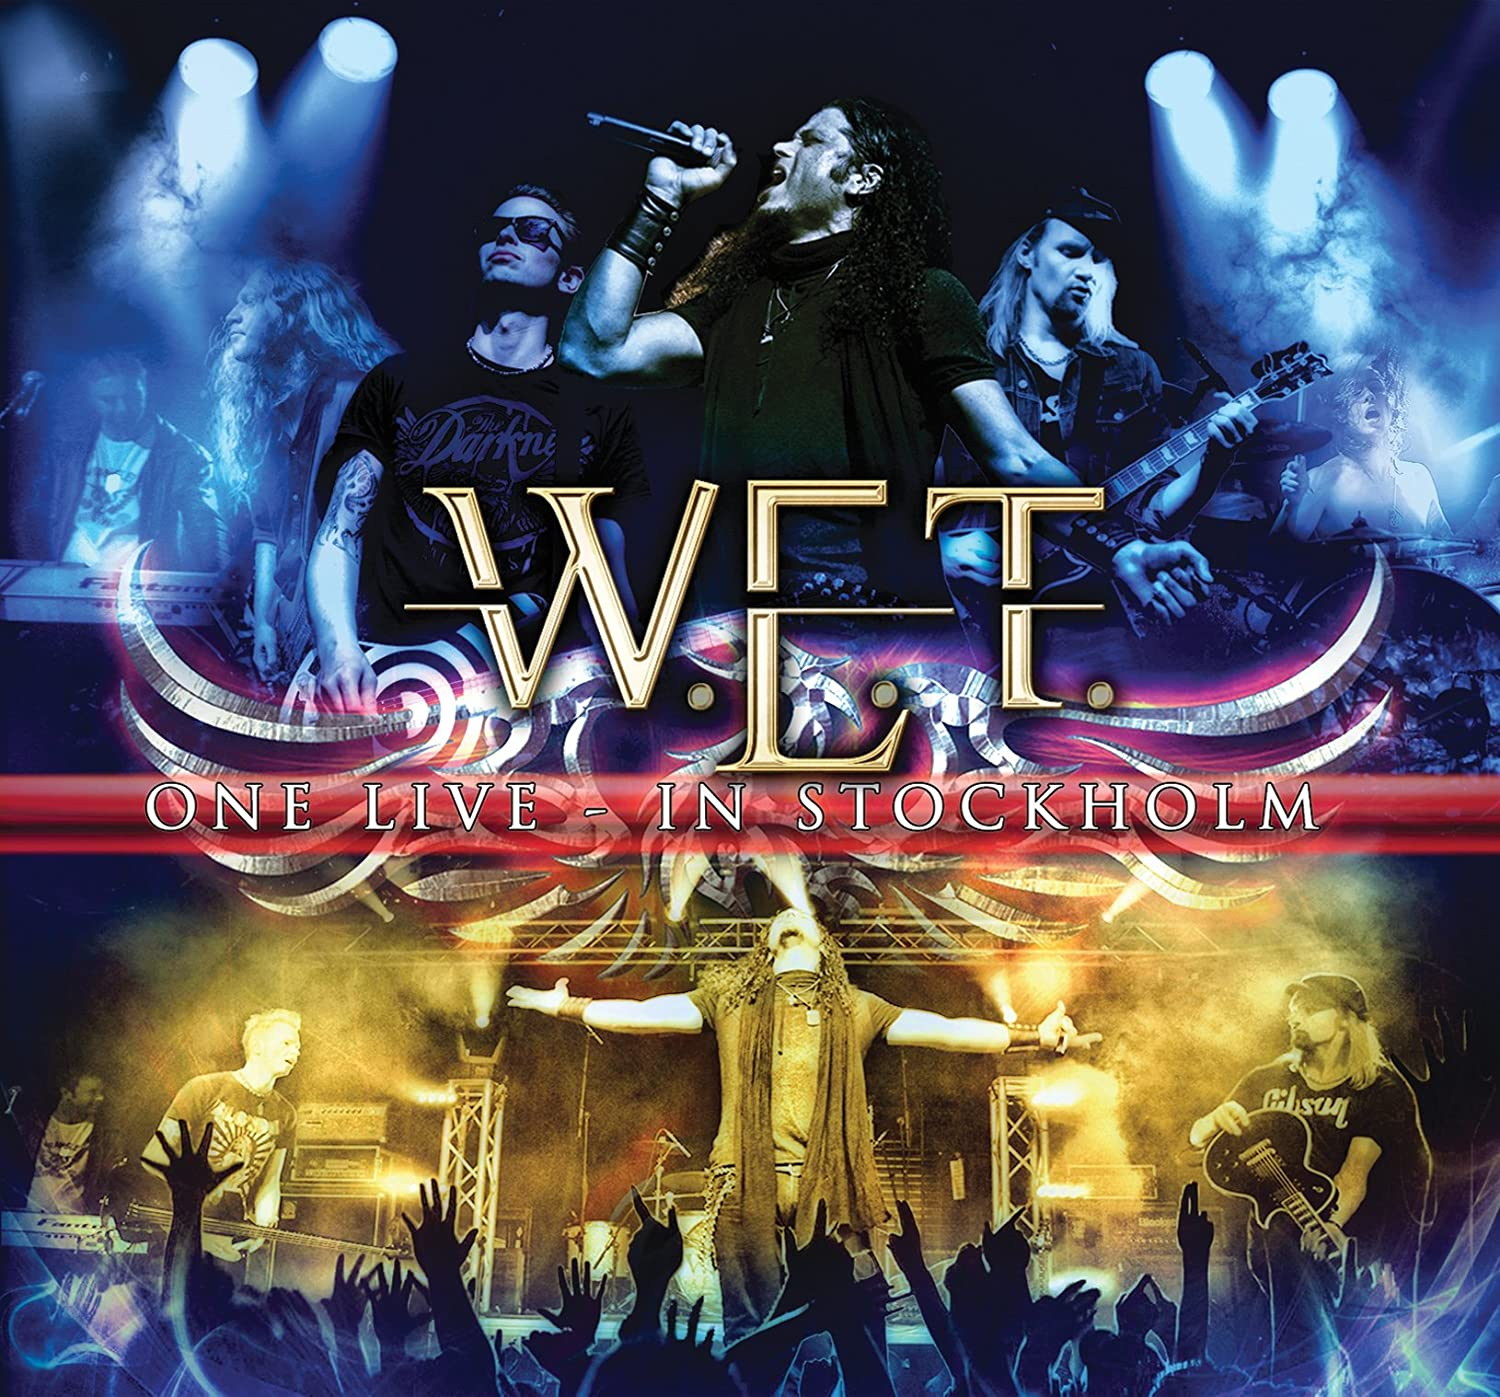 W.E.T - One Live - In Stockholm (2CD/DVD) 81V9PWdCTGL._SL1500_